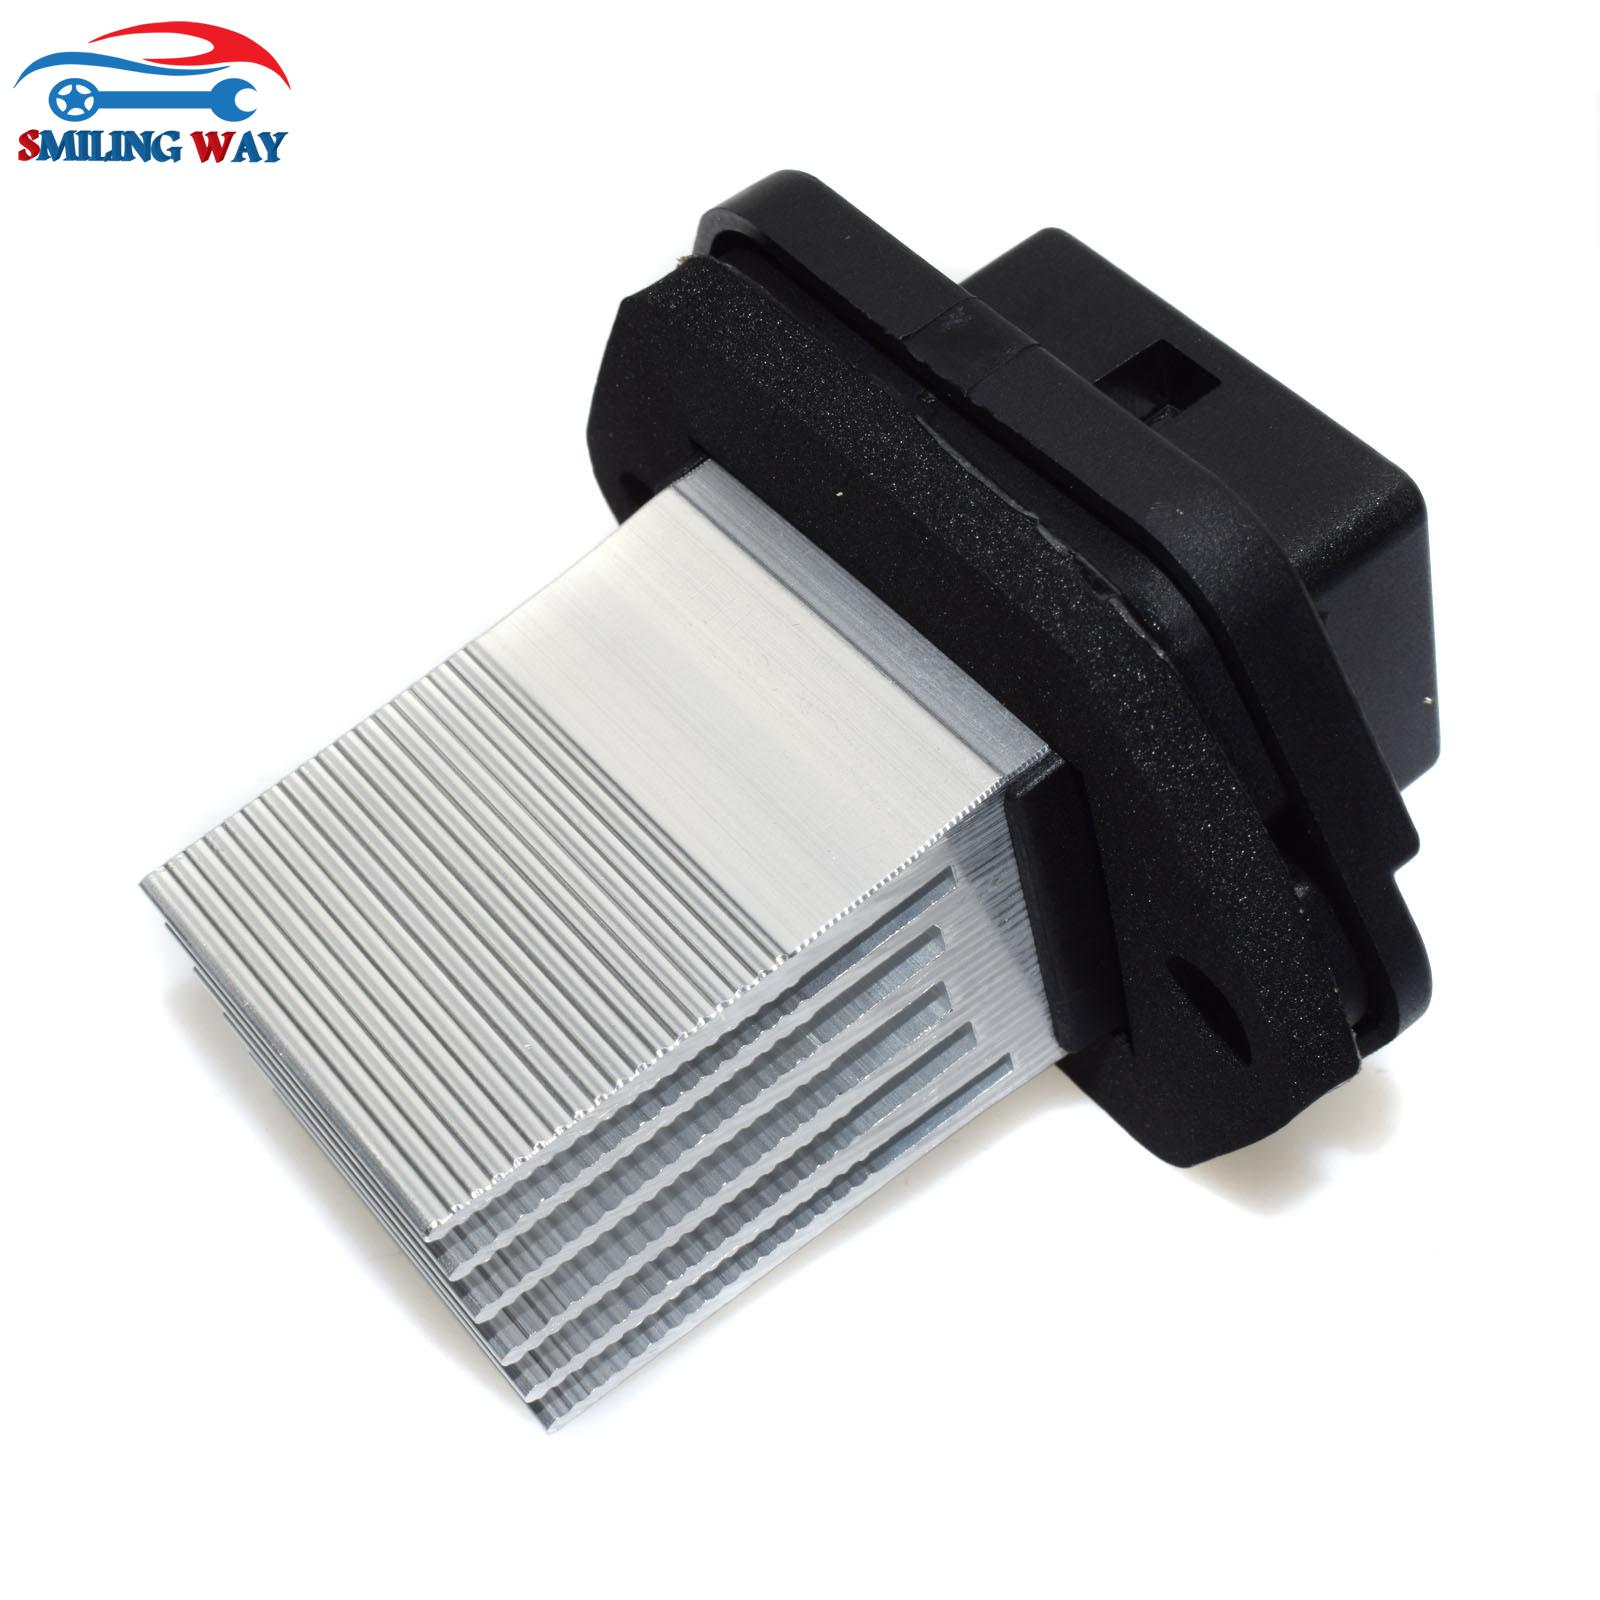 Smiling Way Hvac Blower Motor Resistor For Hyundai Tucson 2005 2007 Kia Sportage Heater Wiring 2010 Spectra Spectra5 2008 In Motors From Automobiles